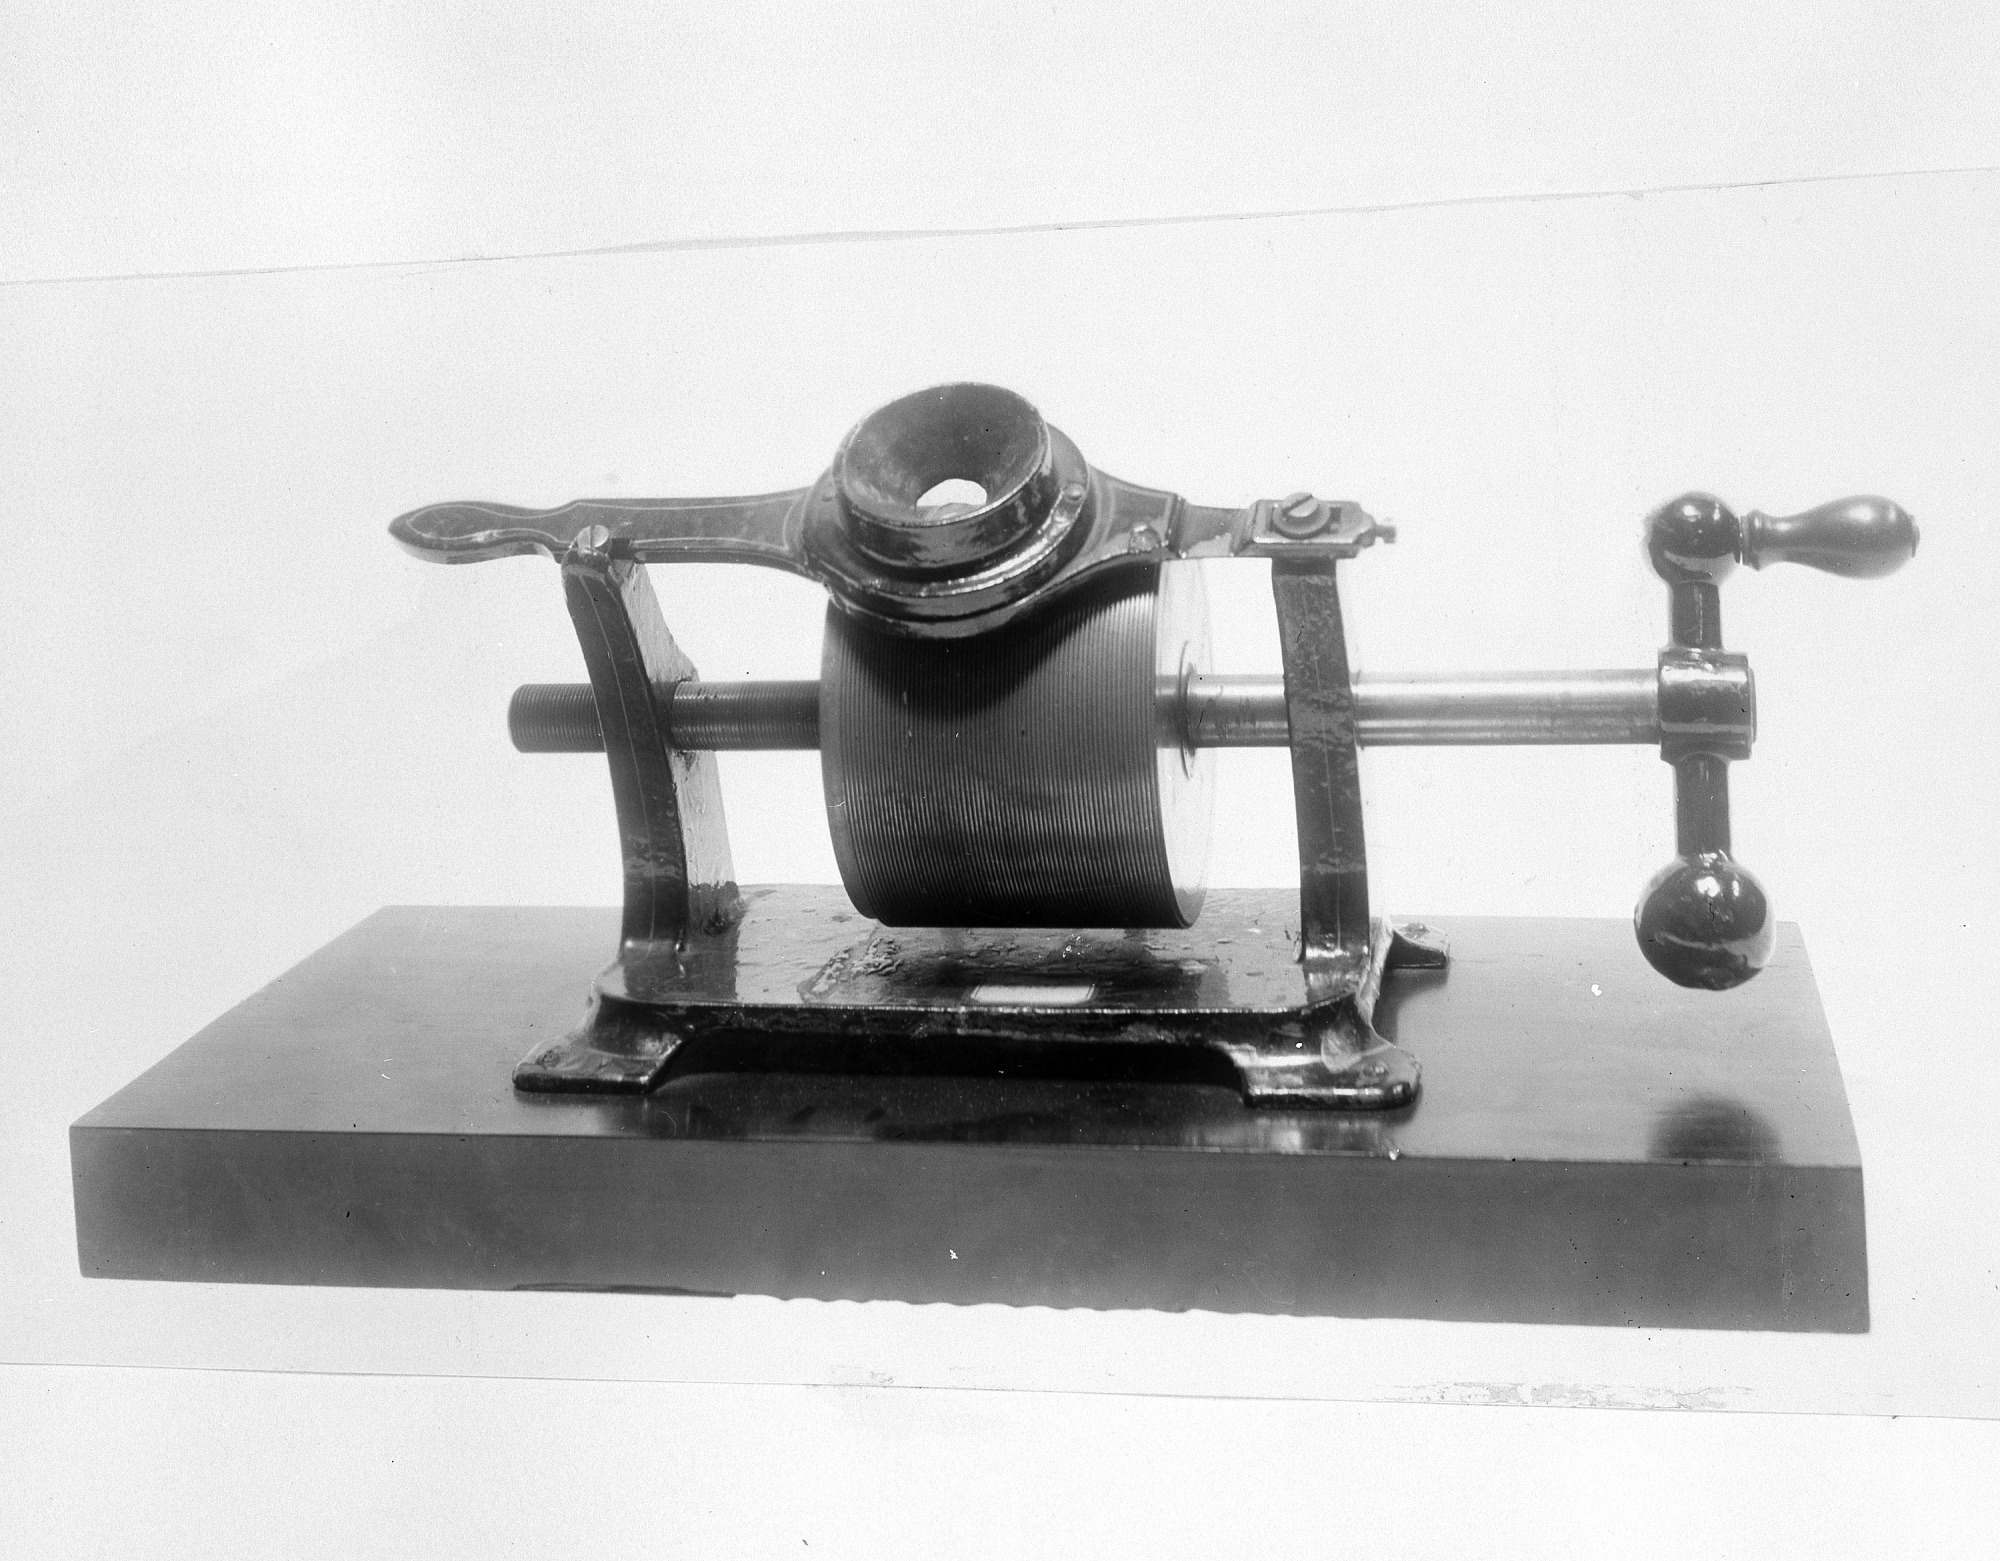 Thomas Edison Demonstrates Telephone and Phonograph to National Academy of Sciences